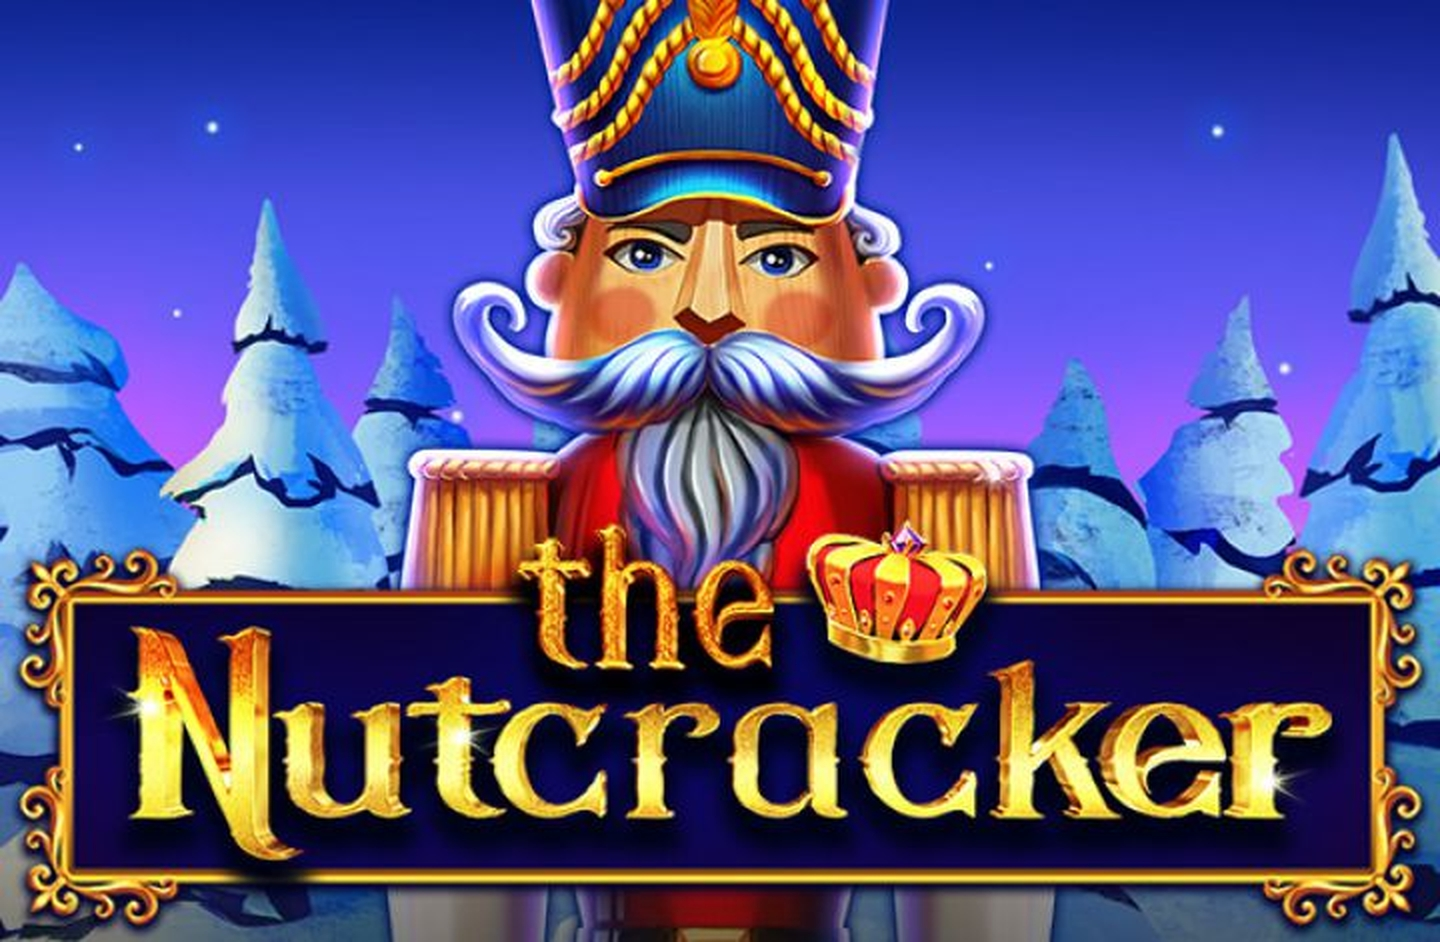 The The Nutcracker (GamePlay) Online Slot Demo Game by Gameplay Interactive